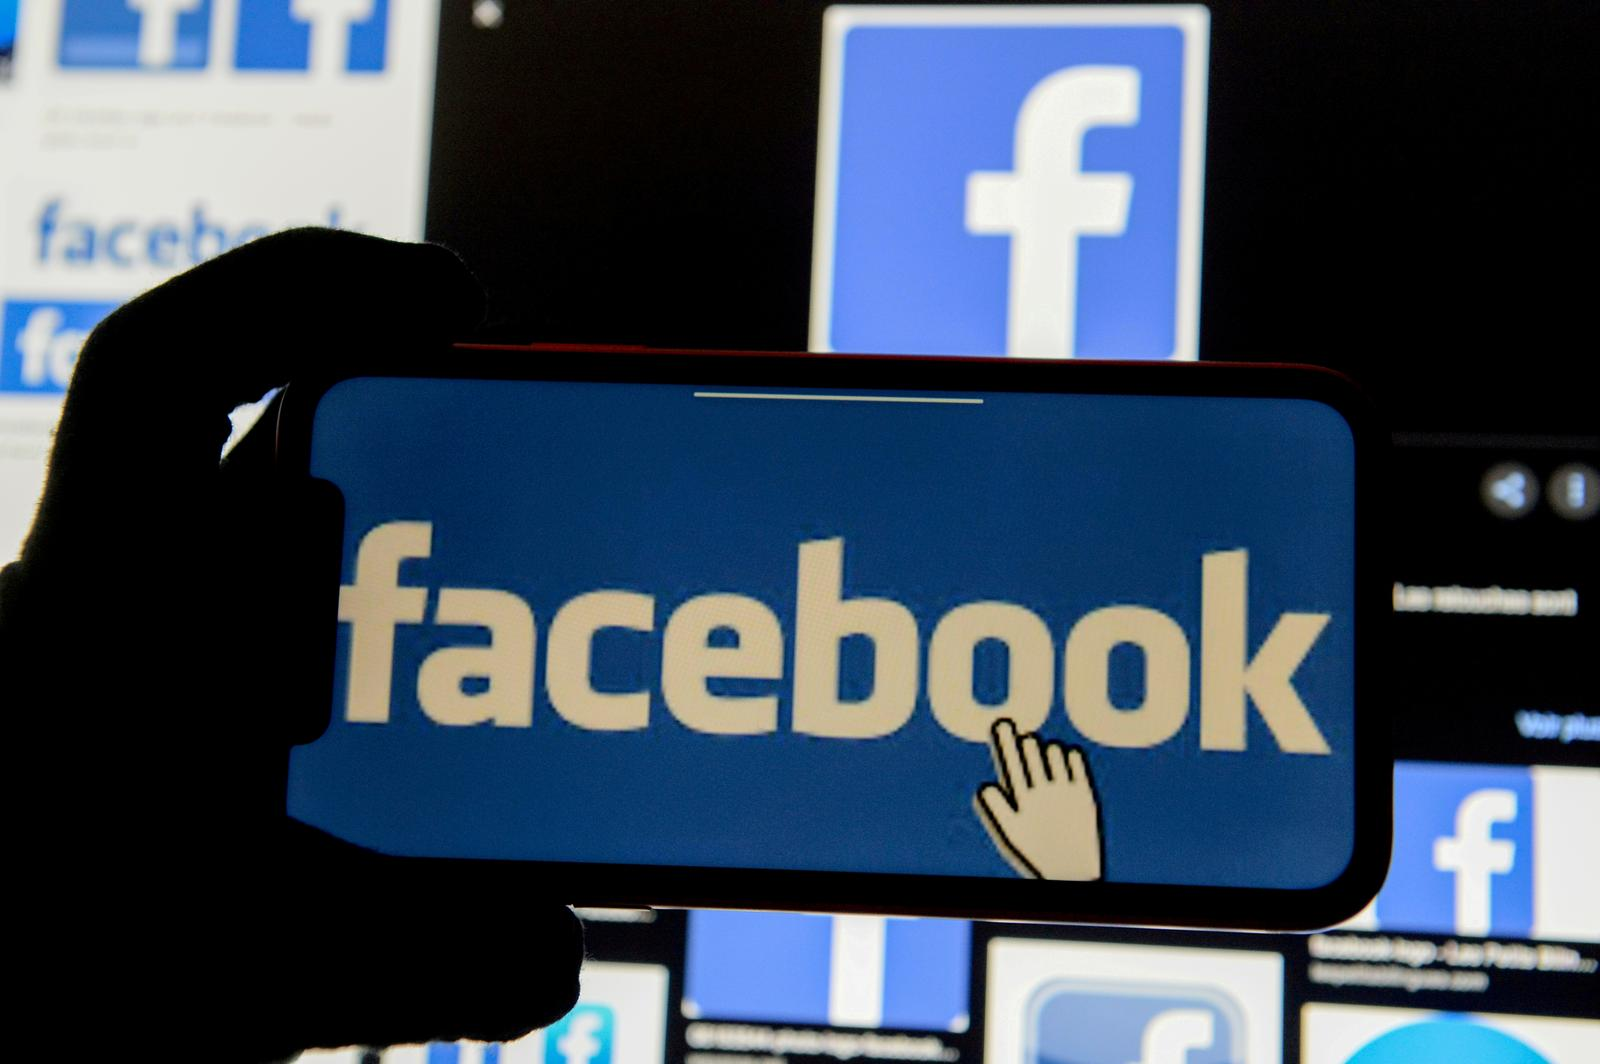 Italy court orders Facebook to pay $5 million in damages for copying app